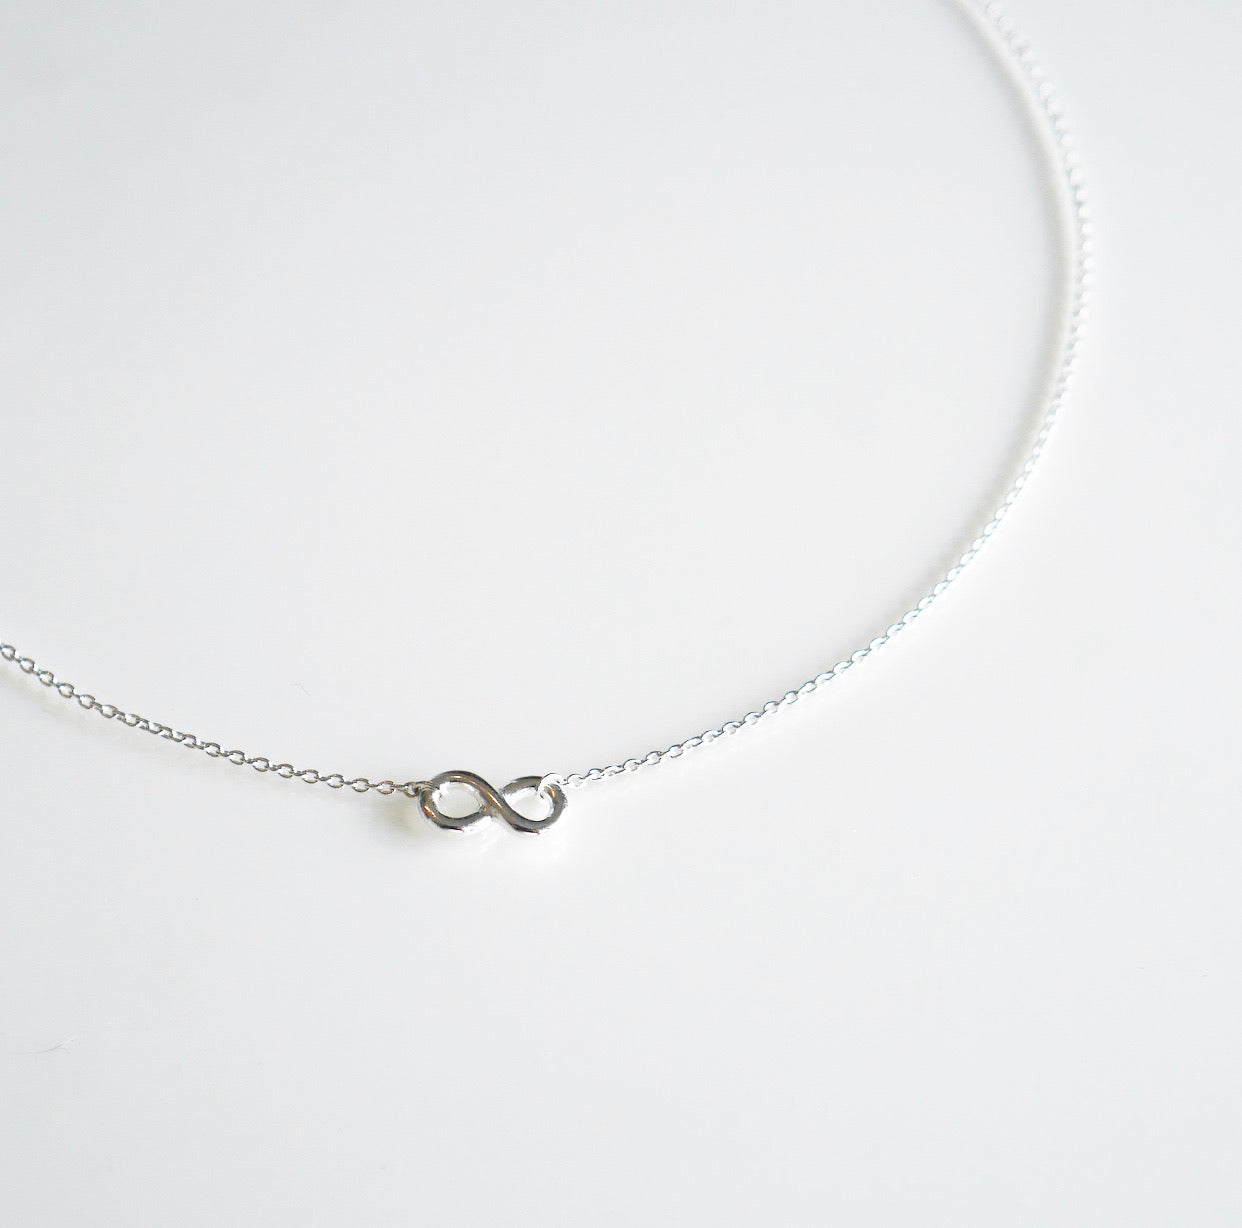 Infinity Love Choker Necklace